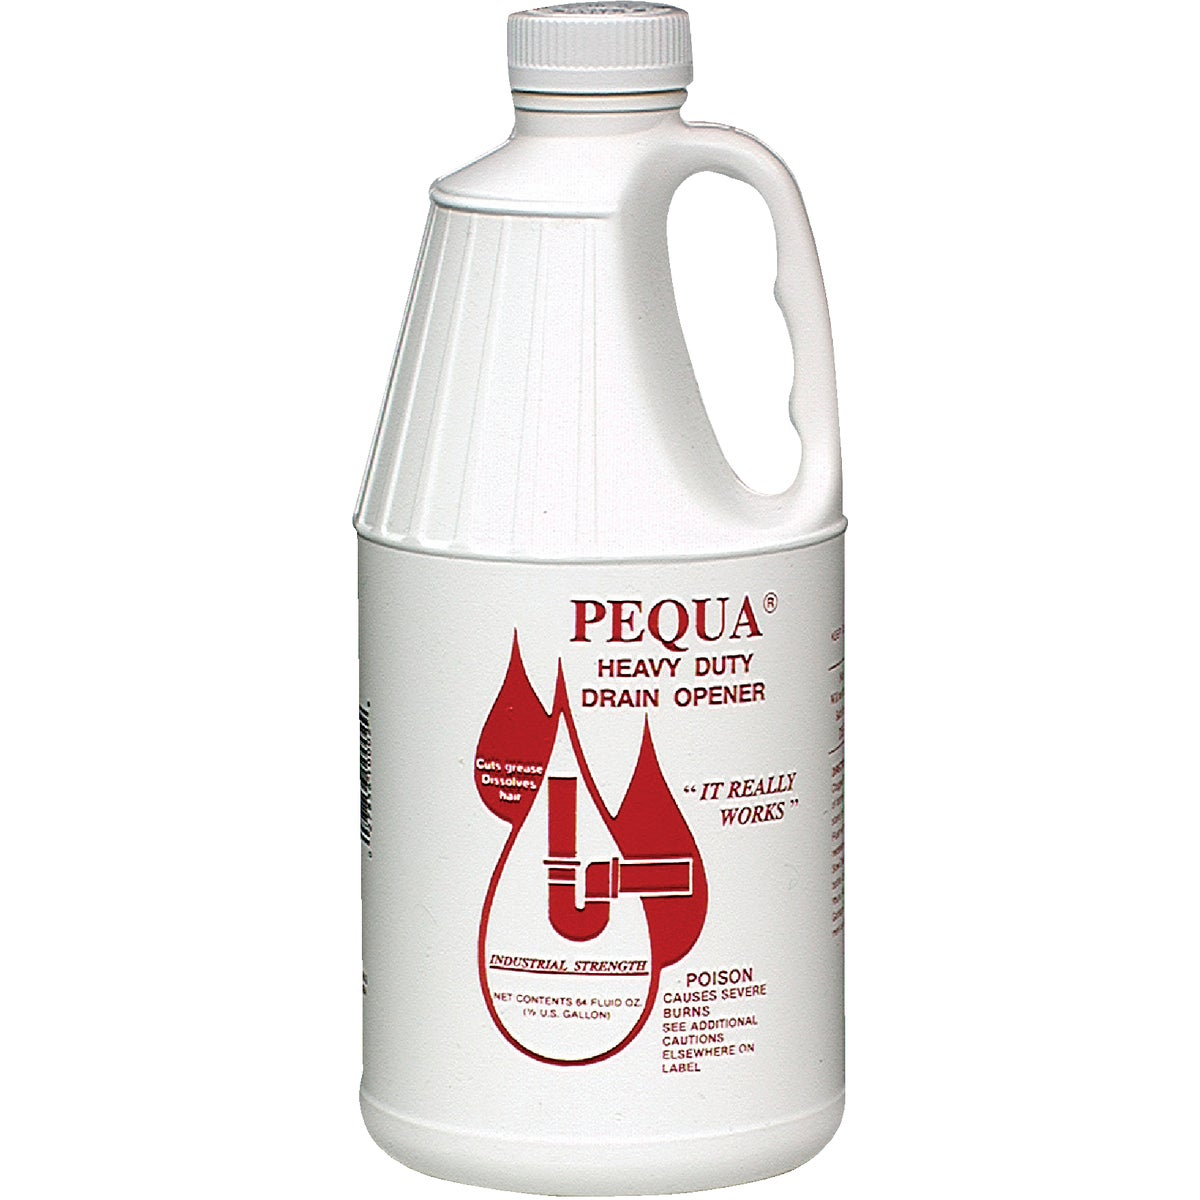 1/2-GAL HD DRAIN OPENER - P-10264 by Pequa Industries Inc